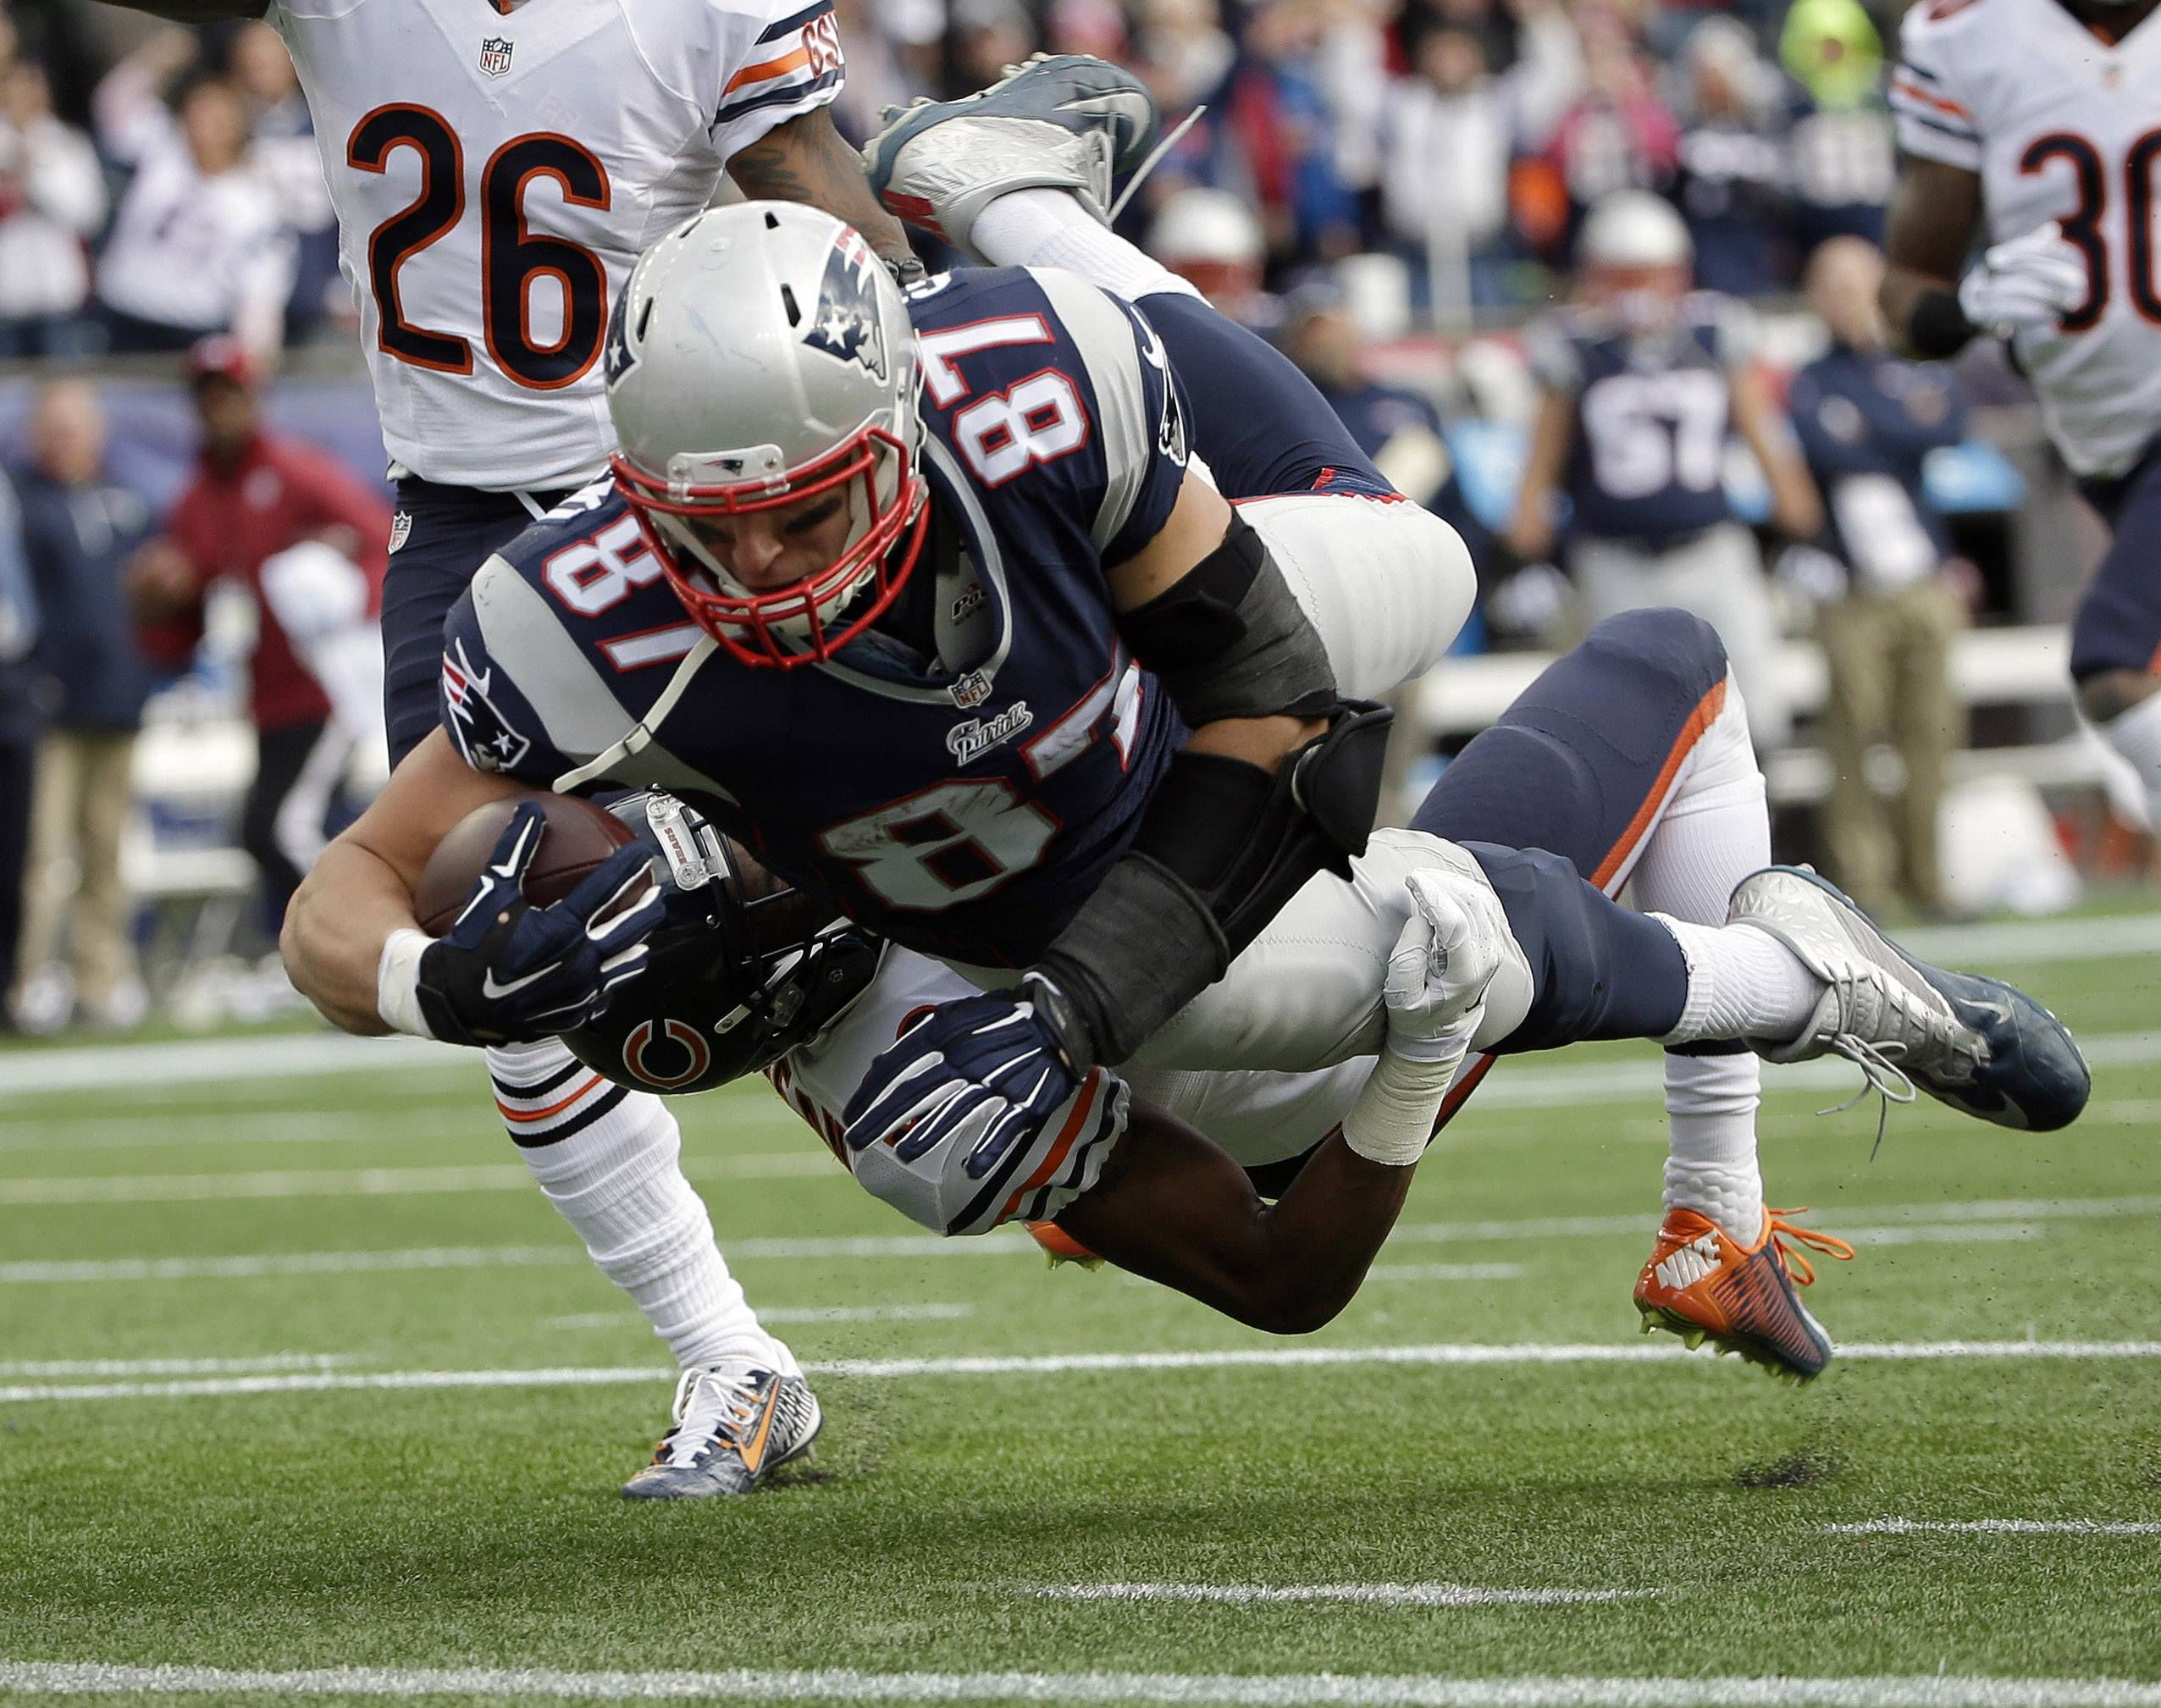 Images Chicago Bears Vs New England Patriots New England Patriots Patriots Football Gronkowski